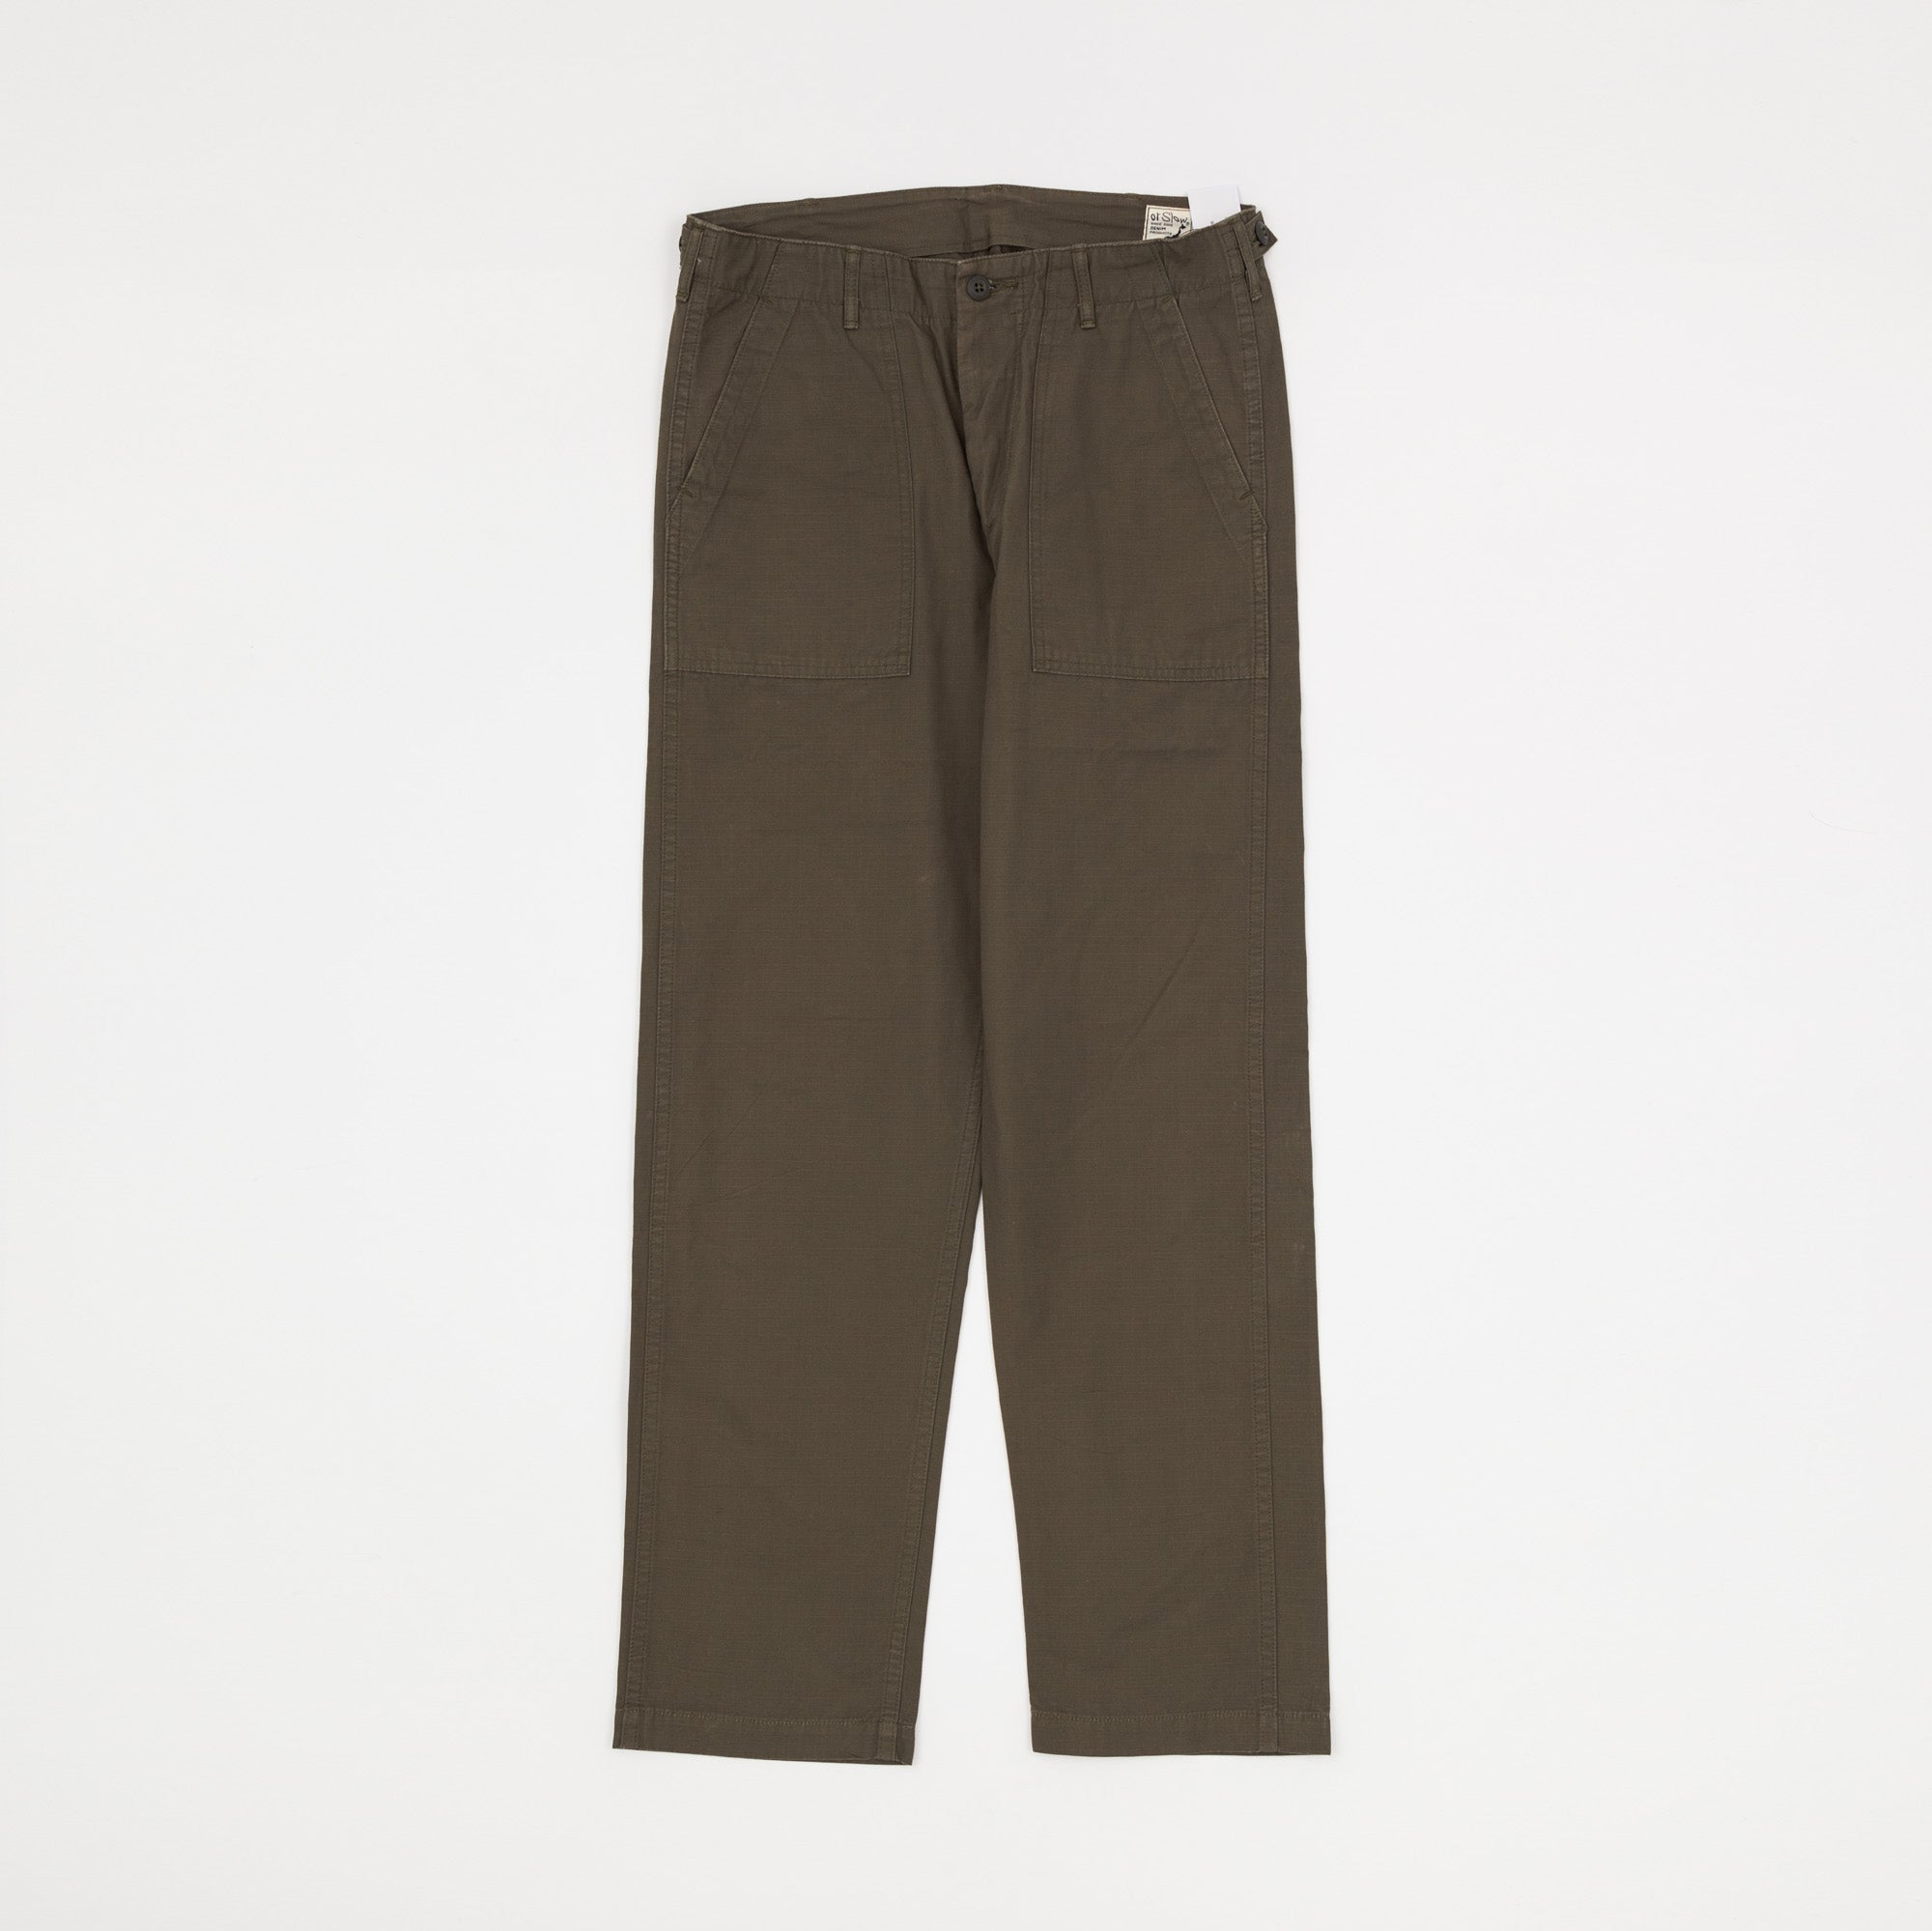 Orslow Ripstop Fatigue Trousers